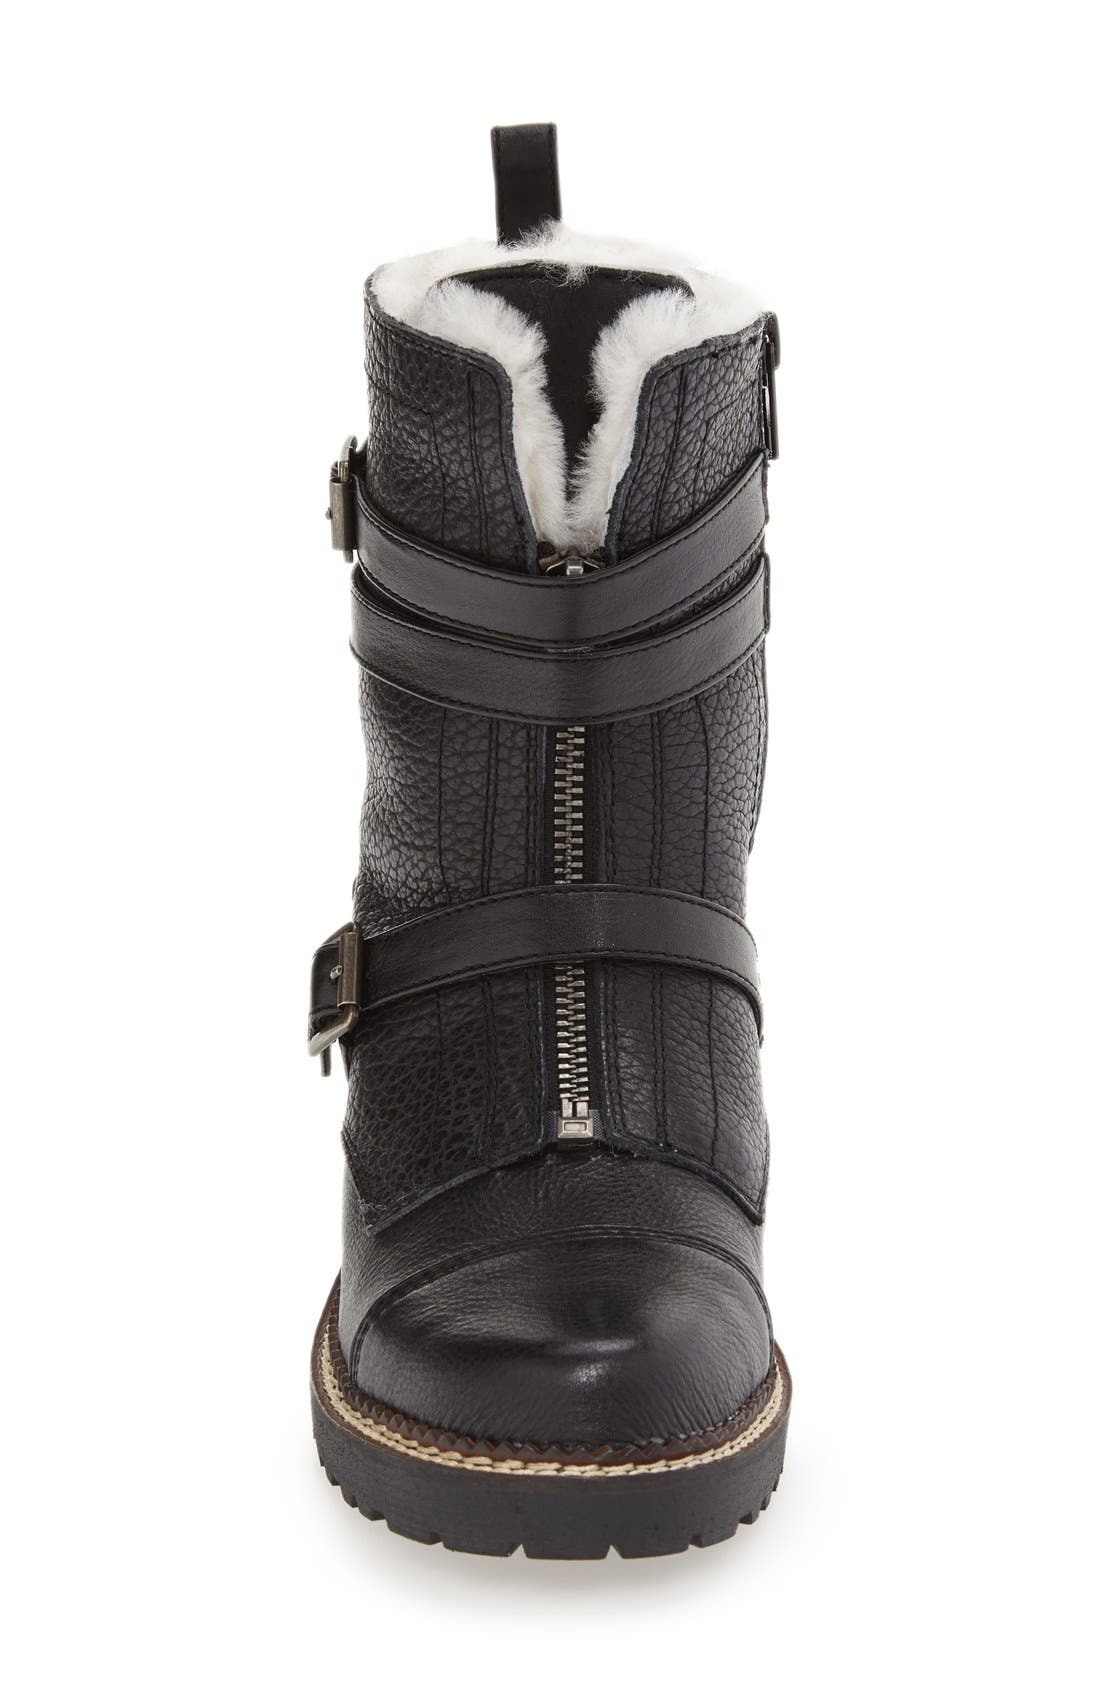 'Pelli' Genuine Shearling Lined Boot,                             Alternate thumbnail 3, color,                             Black Leather